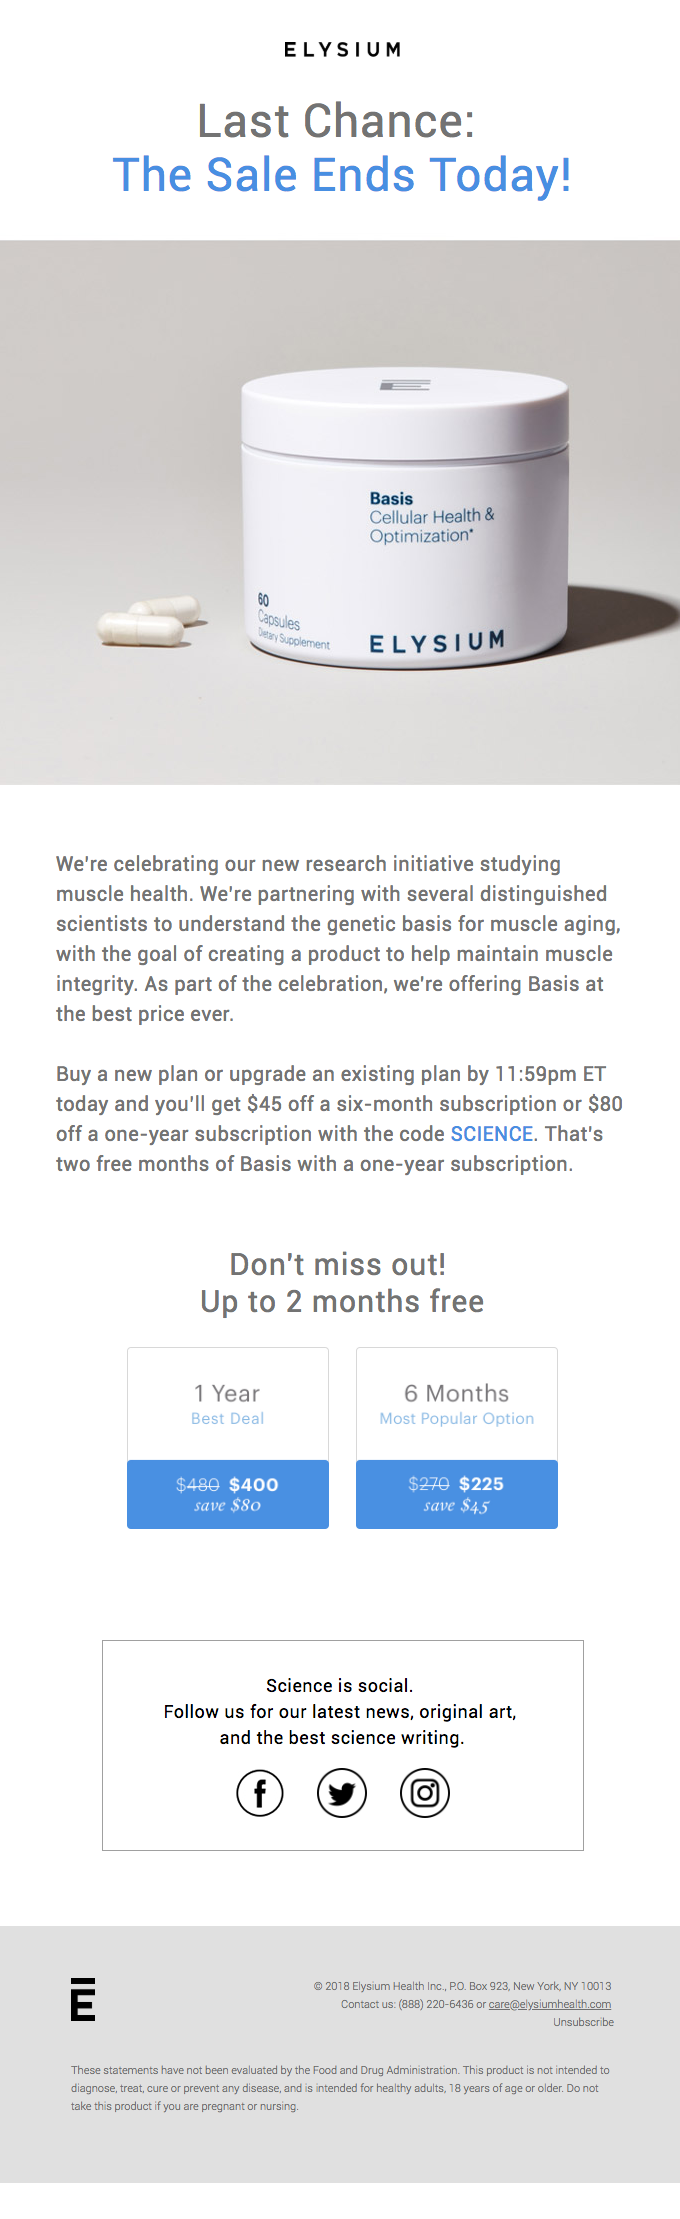 Last Chance: Celebrate Our New Research with Two Months of Free Basis